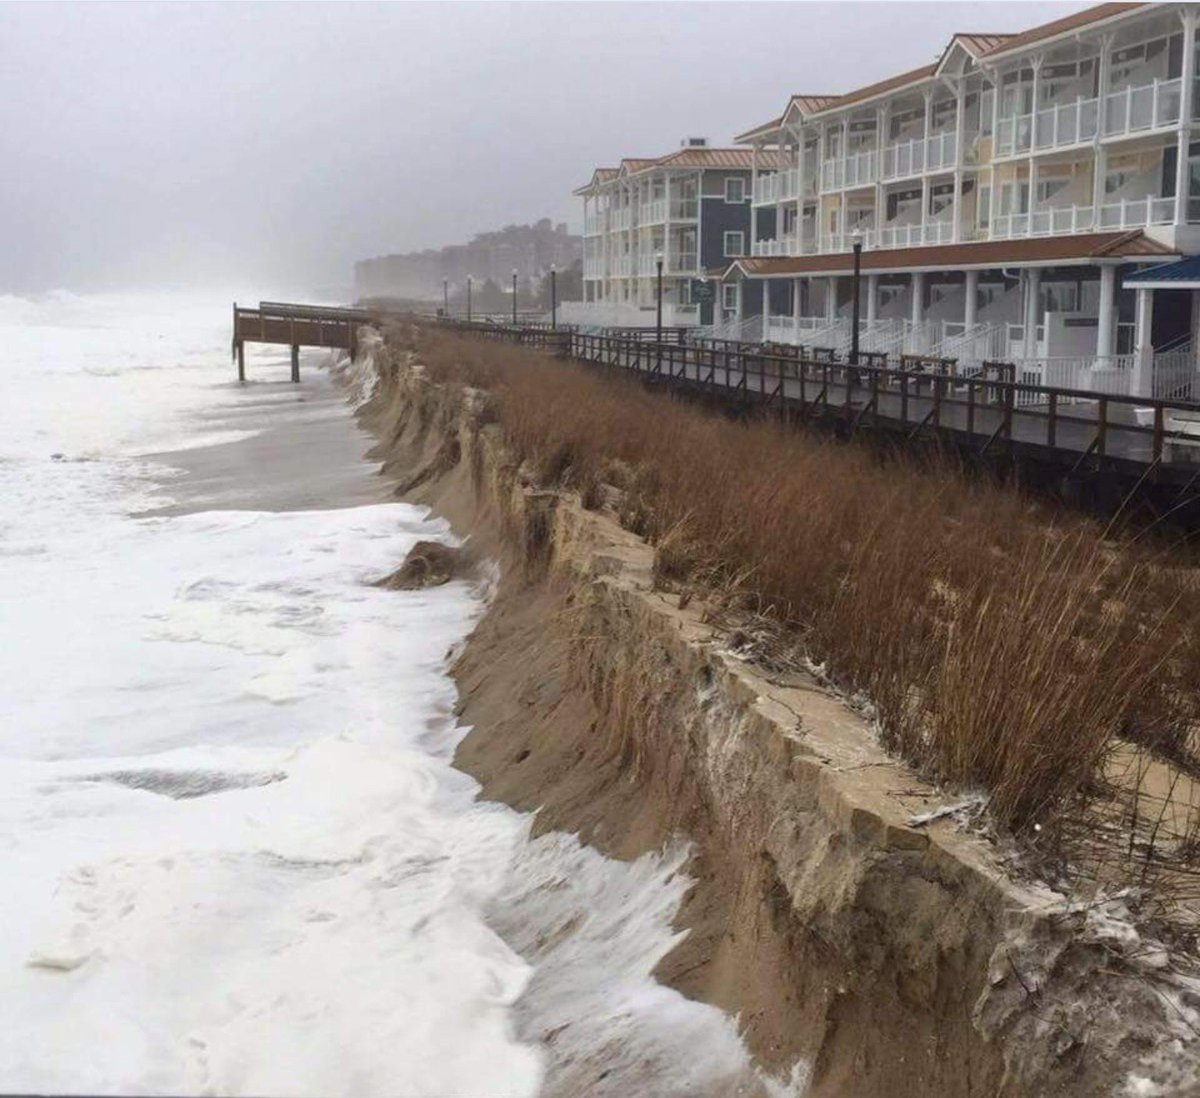 Major coastal beach erosion in Bethany Beach, DE. So sad, been going there every summer since I was a kid... https://t.co/mk6GJY24Mj